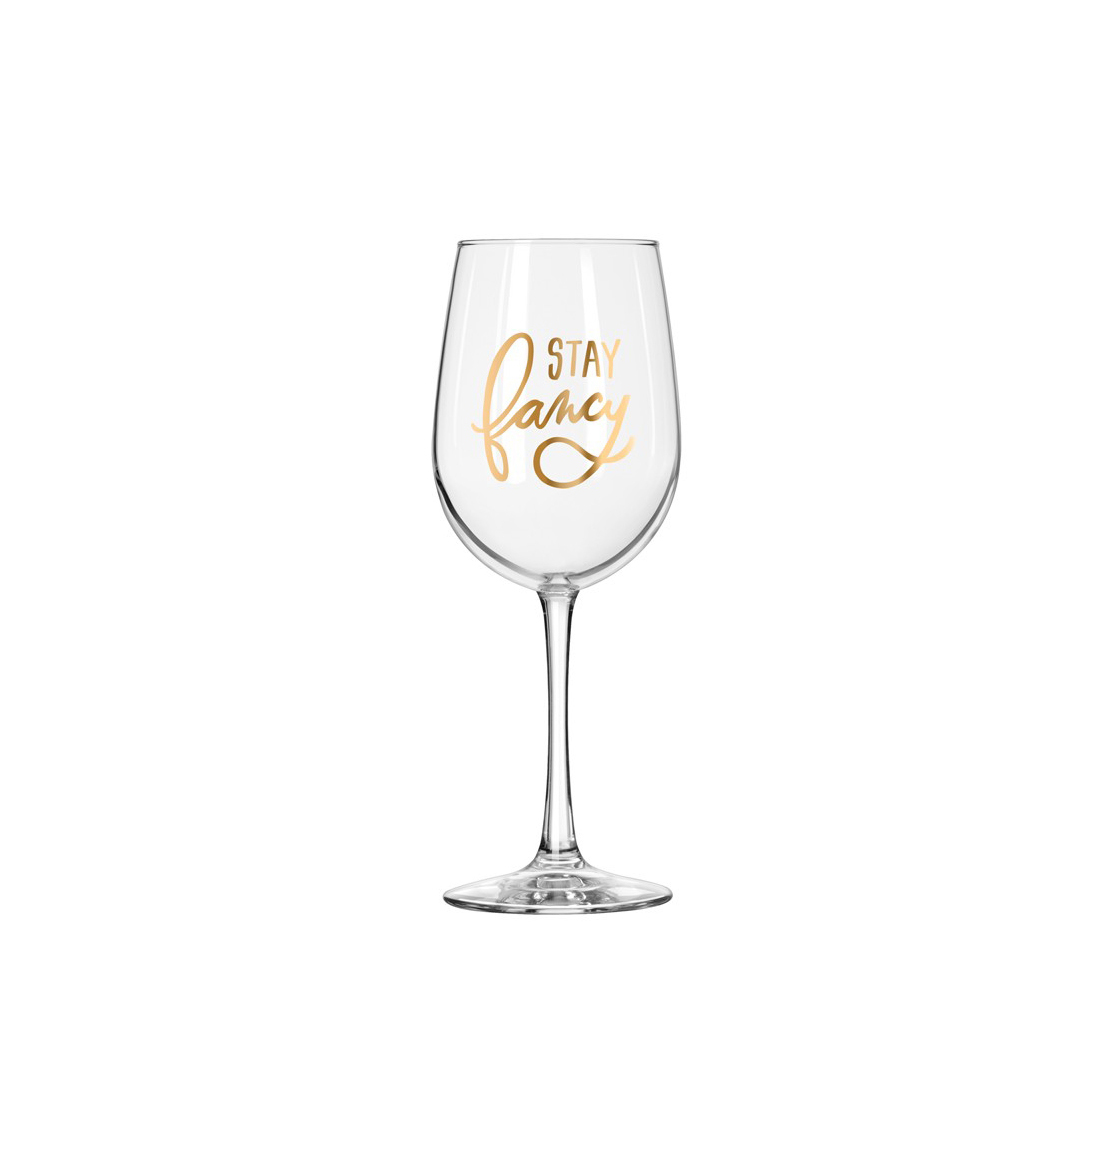 Stay Fancy Wine Glass